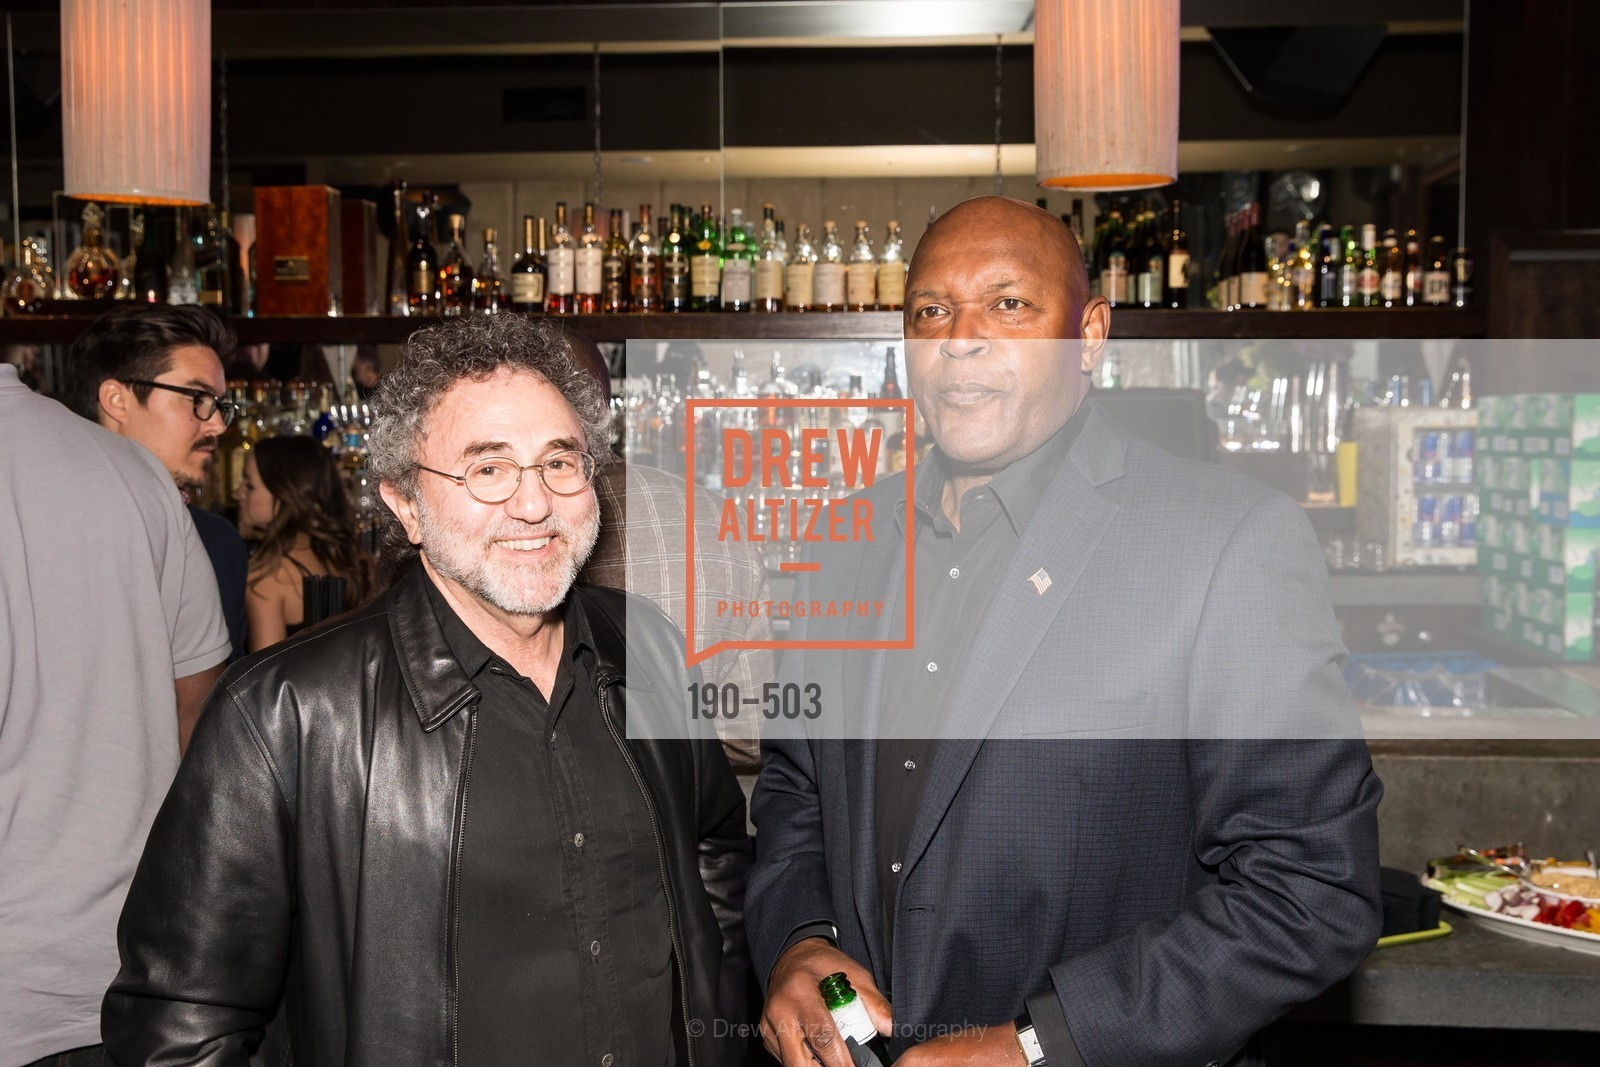 Gerry Schwartzbach, Vida Blue, NFL CELEBRITY Bartending Event, US. US, April 7th, 2014,Drew Altizer, Drew Altizer Photography, full-service agency, private events, San Francisco photographer, photographer california